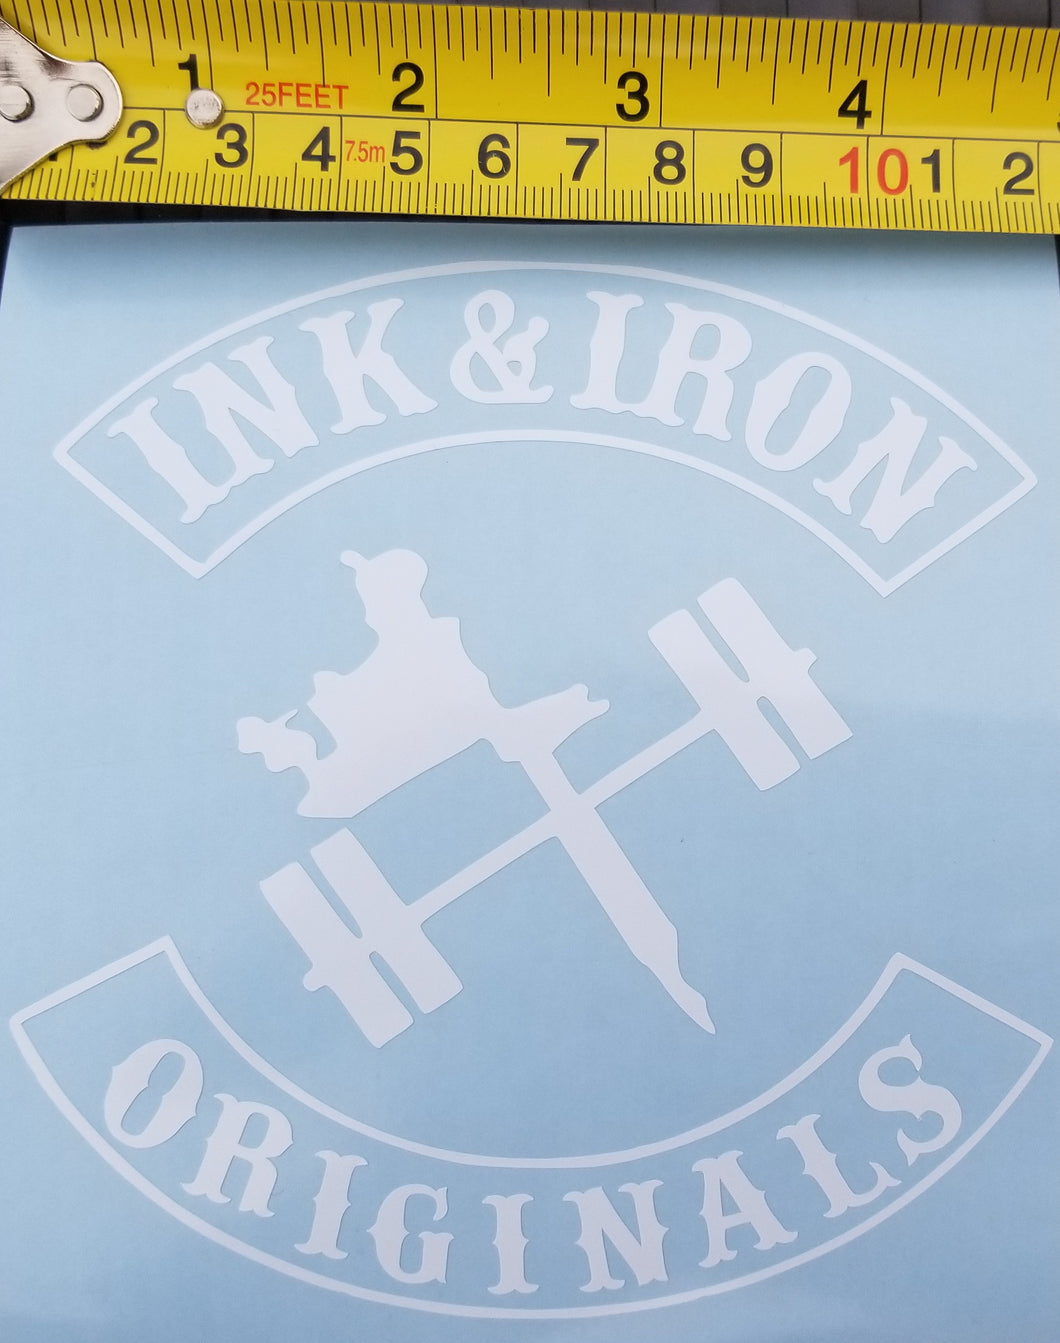 Ink & Iron Vinyl Decals - Ink&Iron Clothing